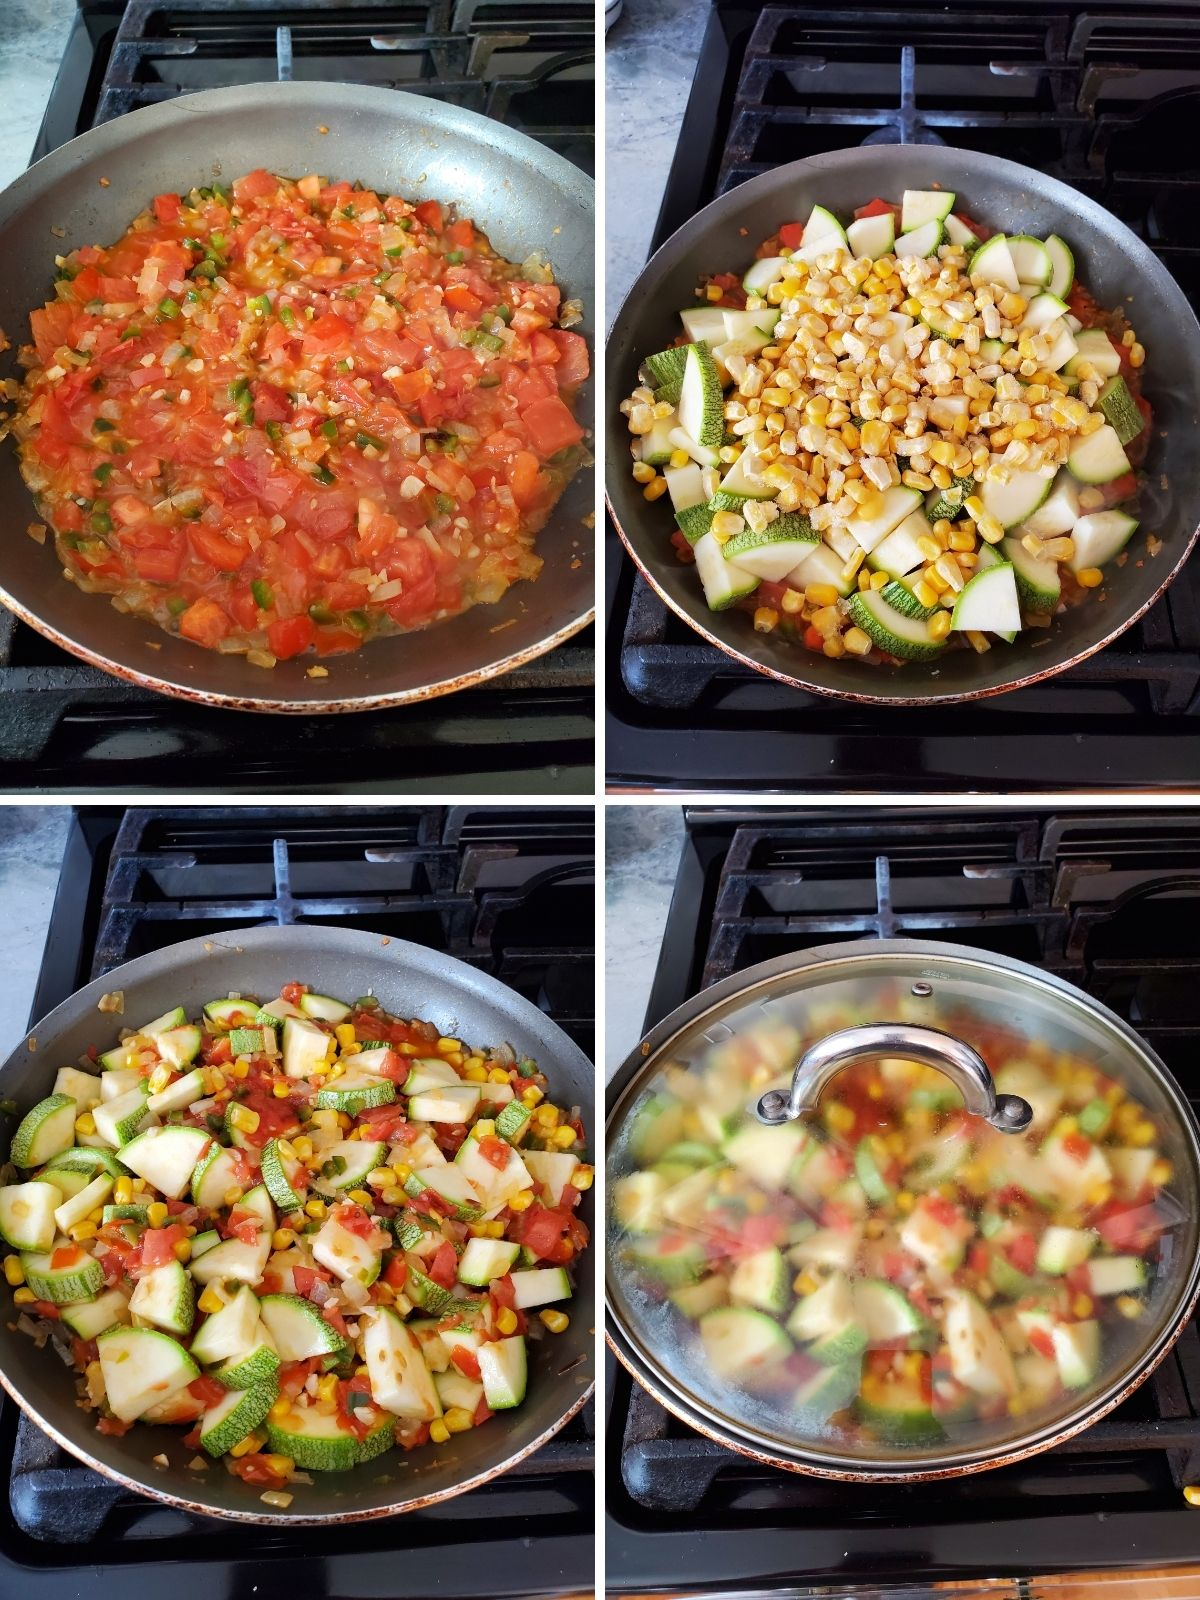 food in a frying pan on the stove